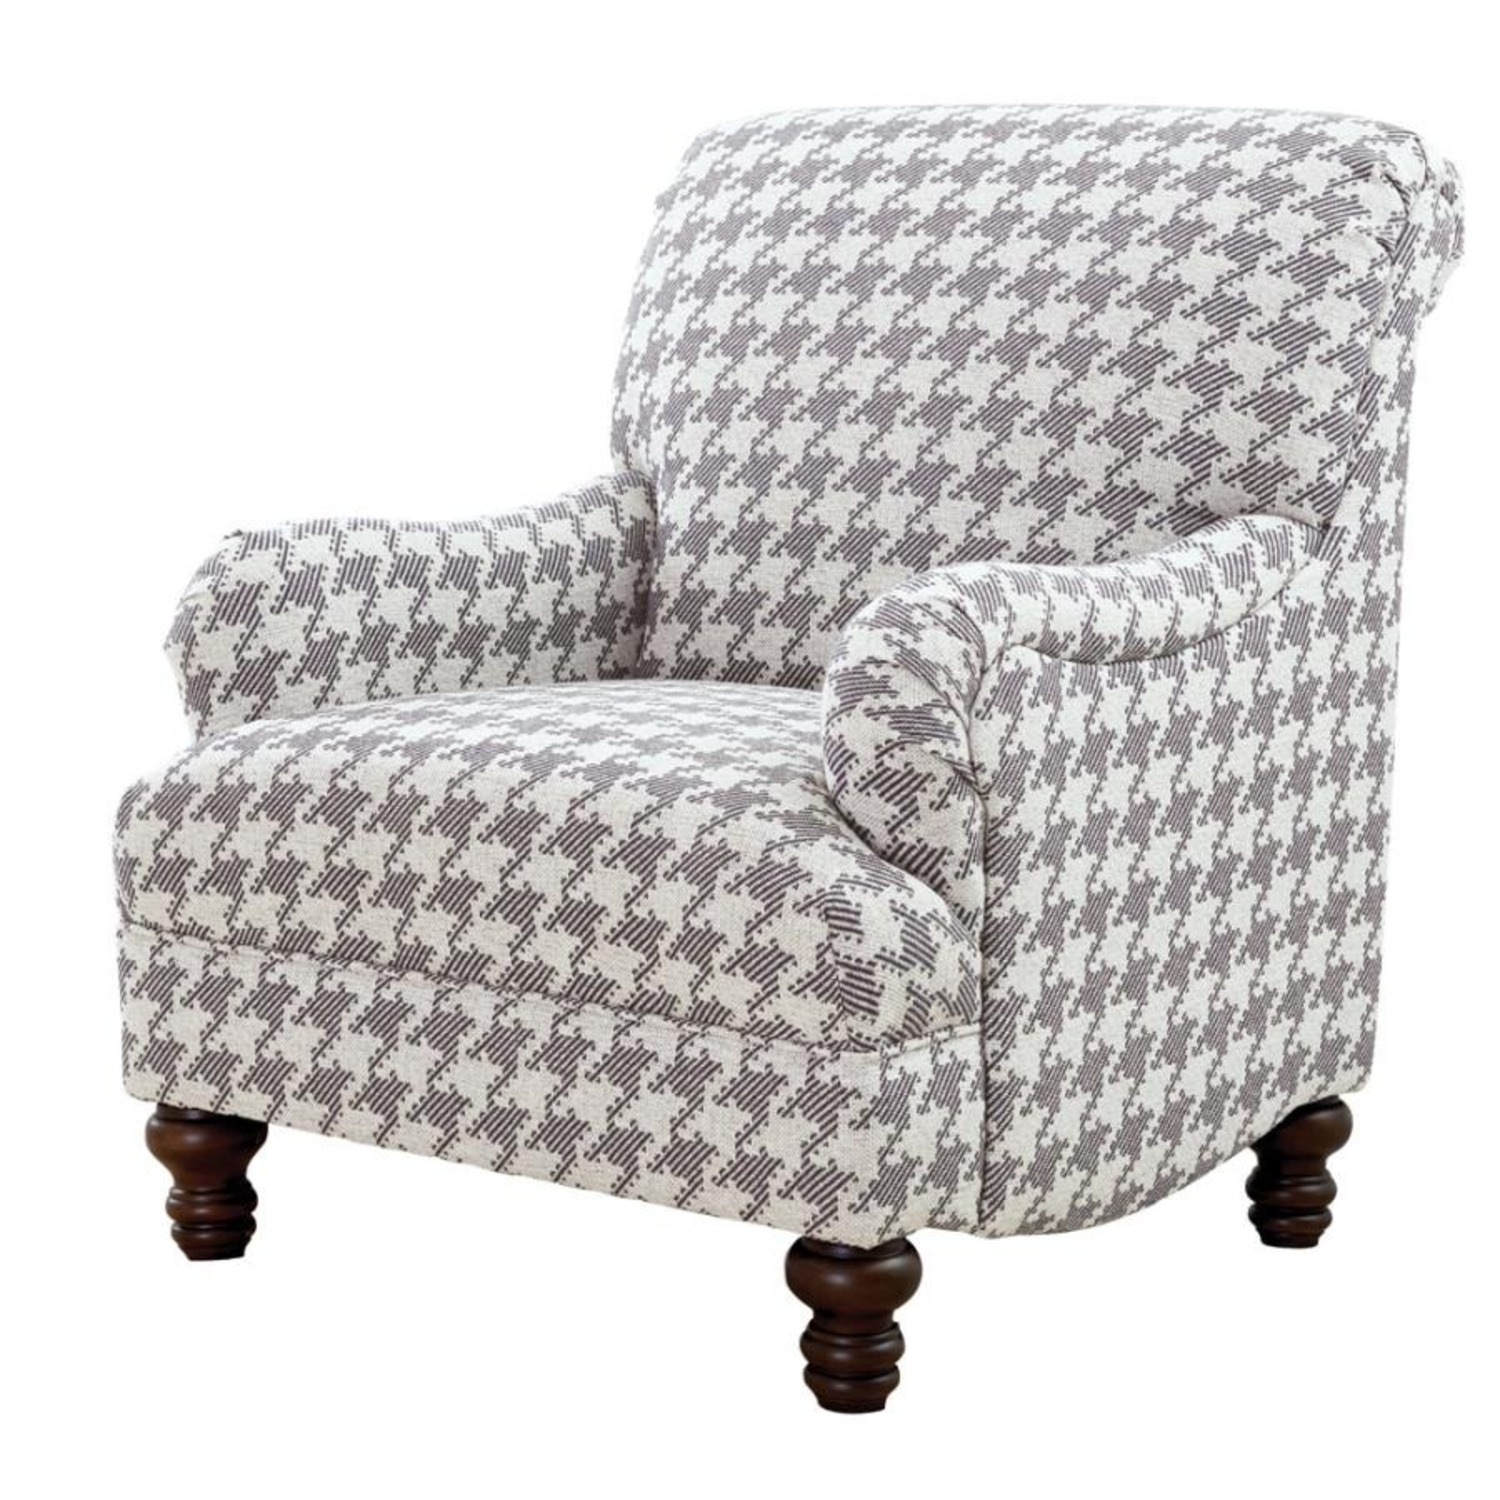 Accent Chair In Grey W Houndstooth Pattern - image-0